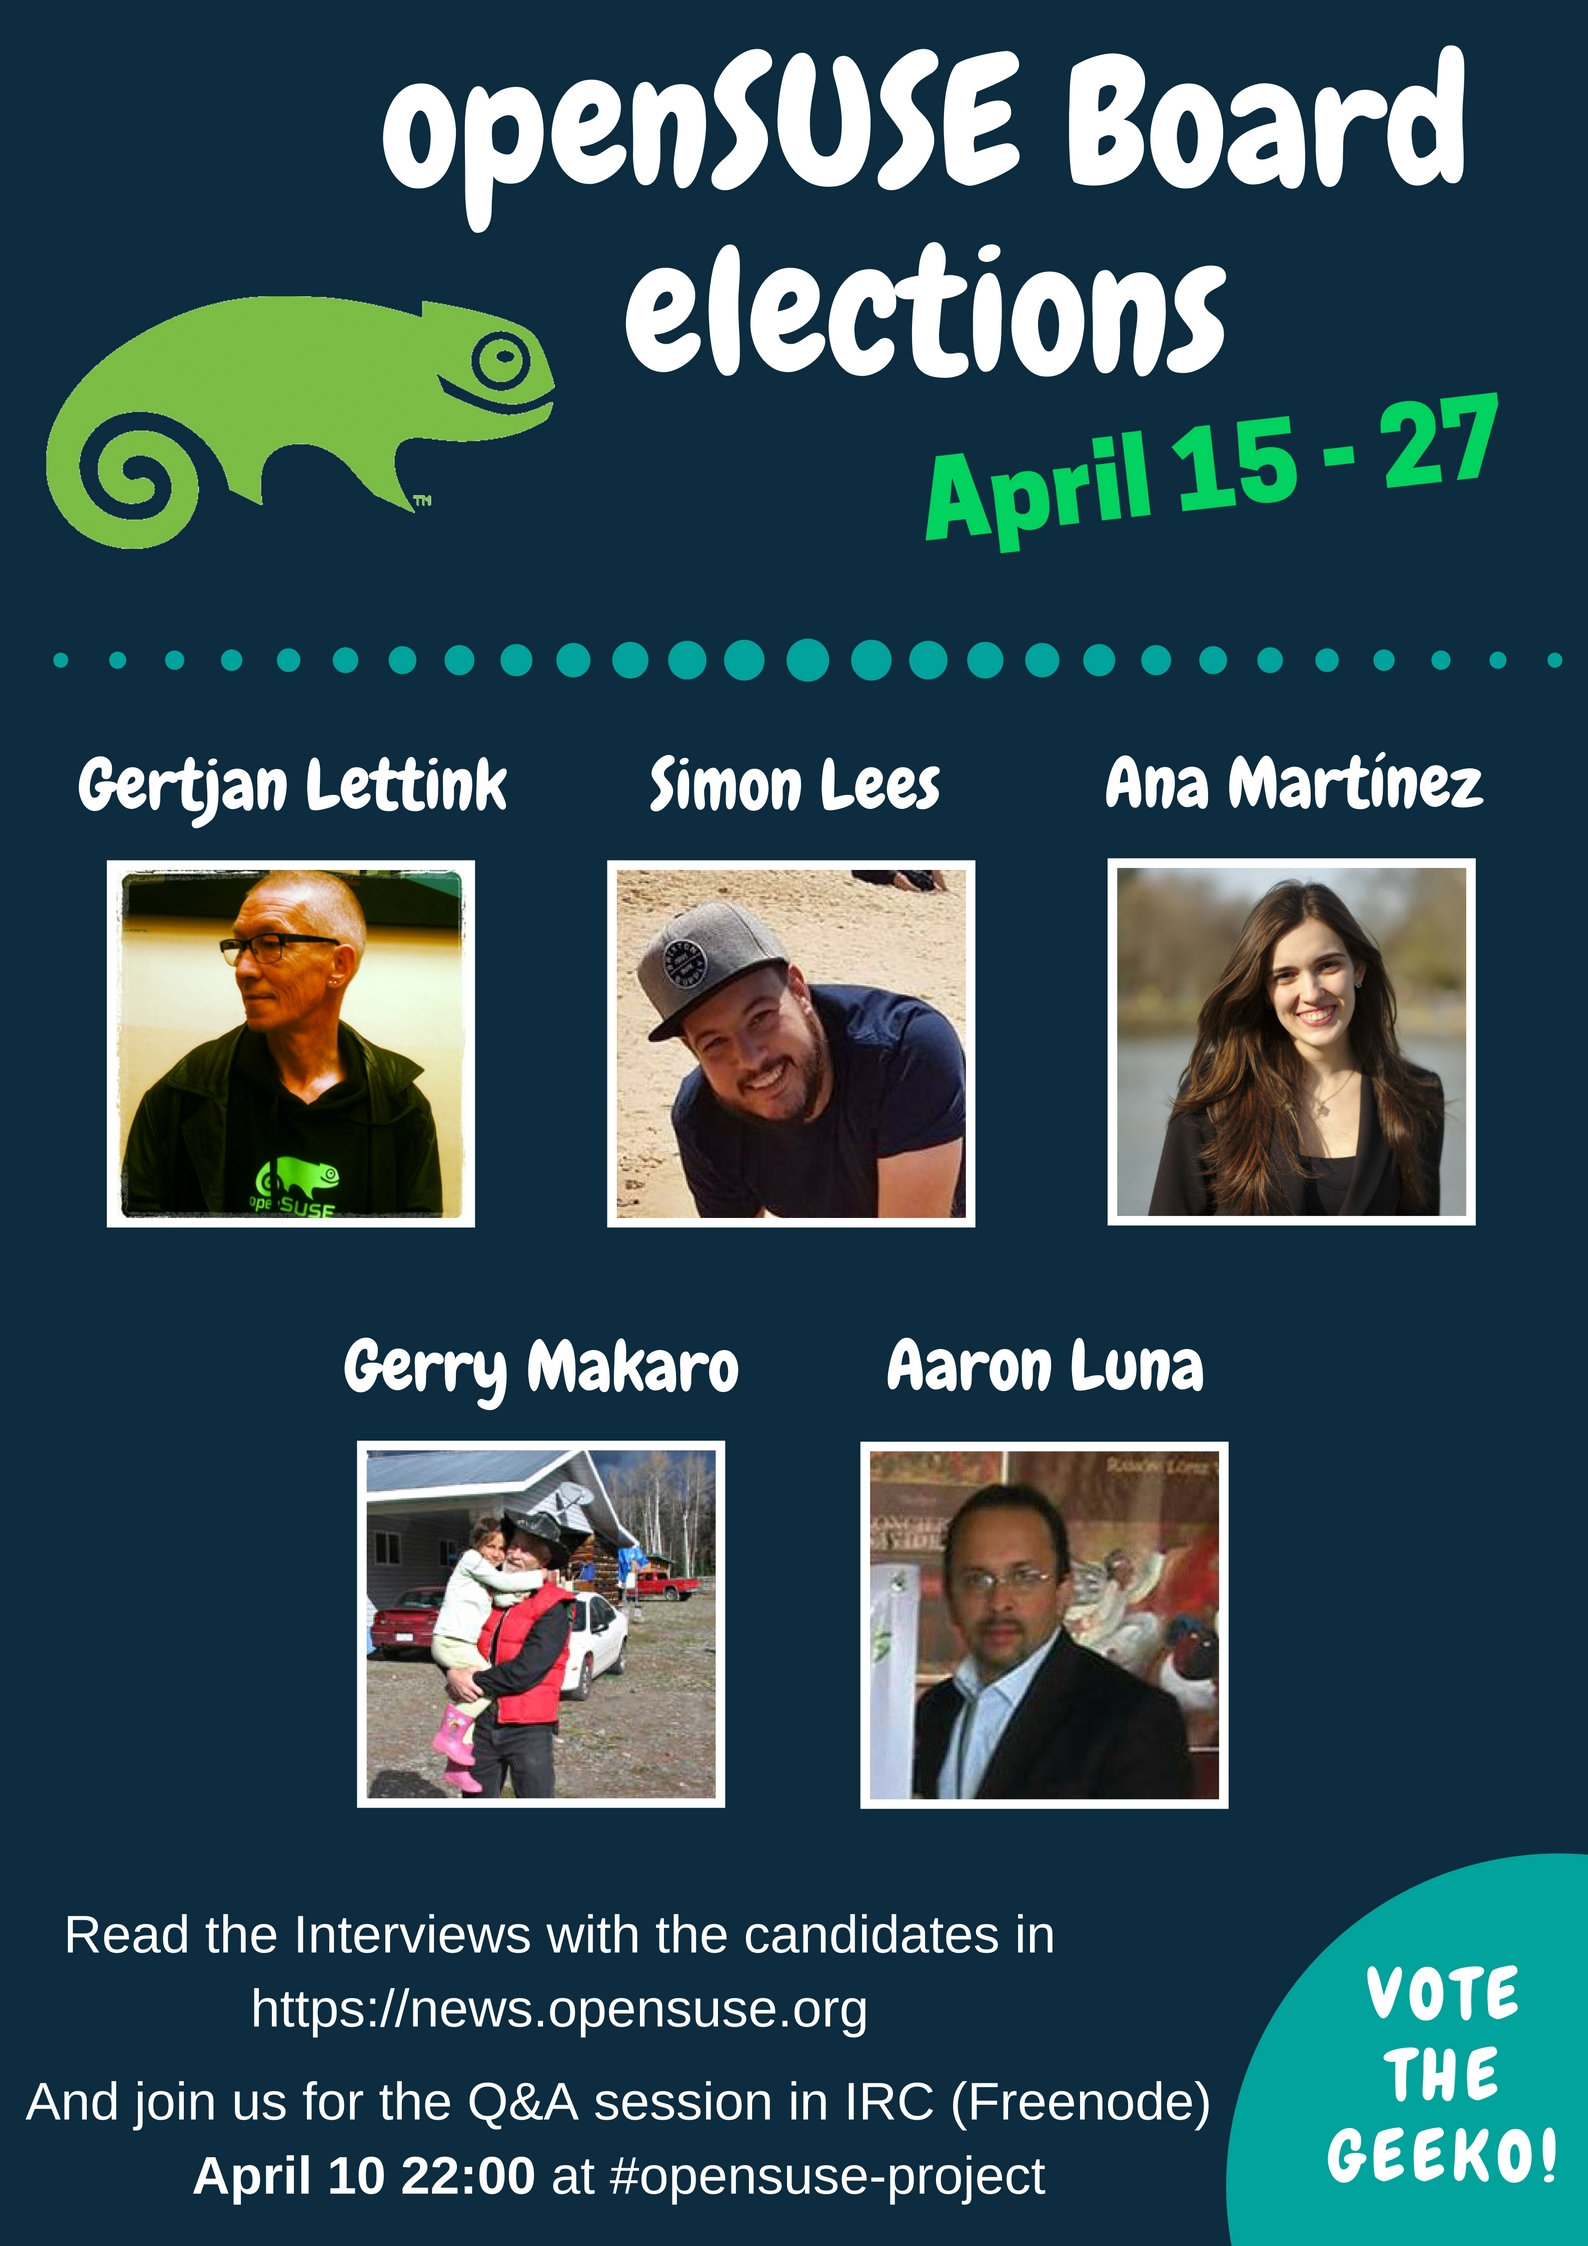 OpenSUSE-elections-2018.jpg